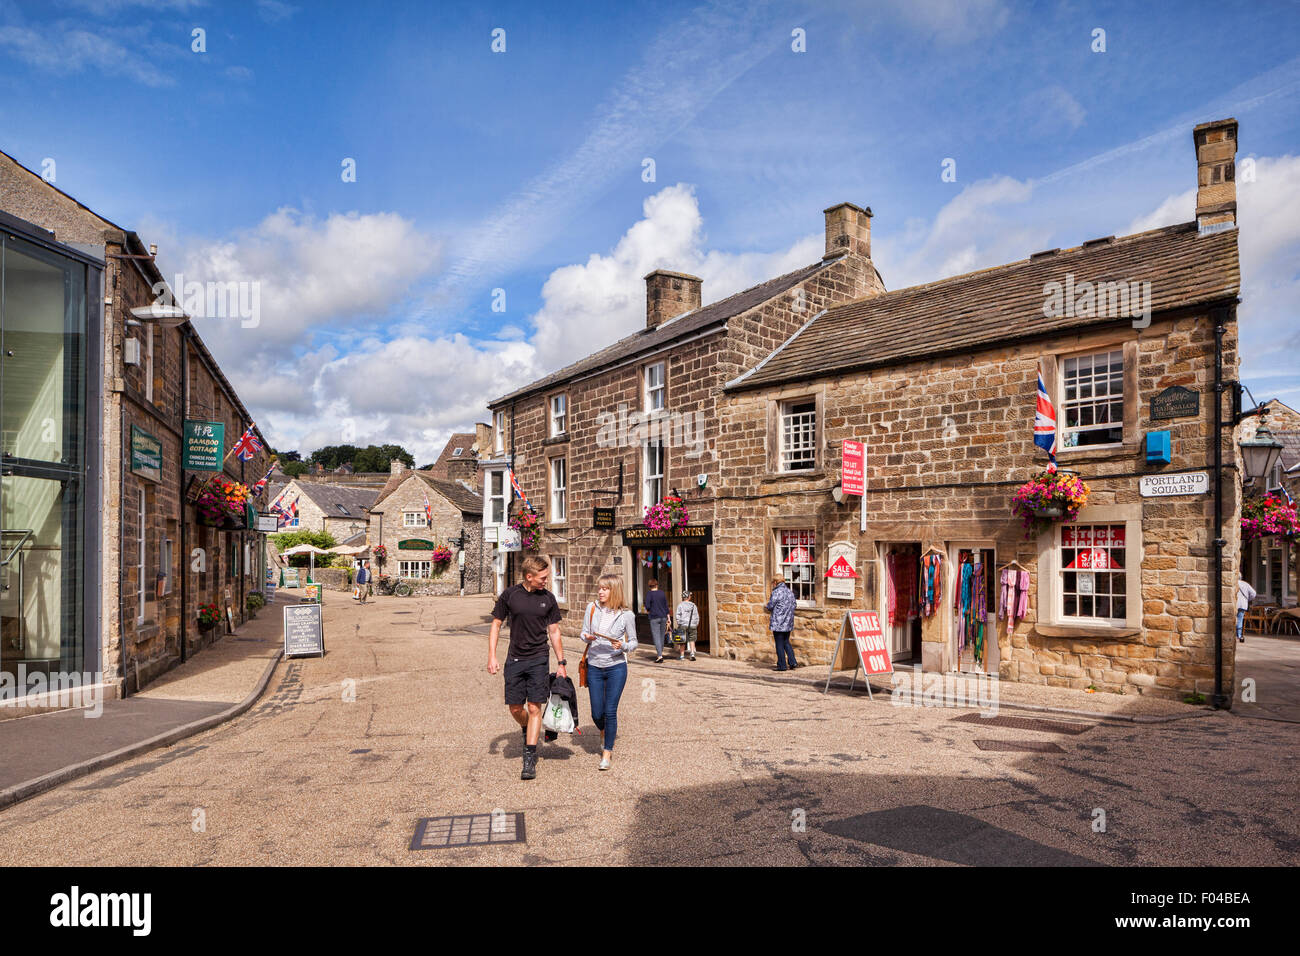 Young couple chatting and walking through Portland Square, Bakewell, Derbyshire, England - Stock Image